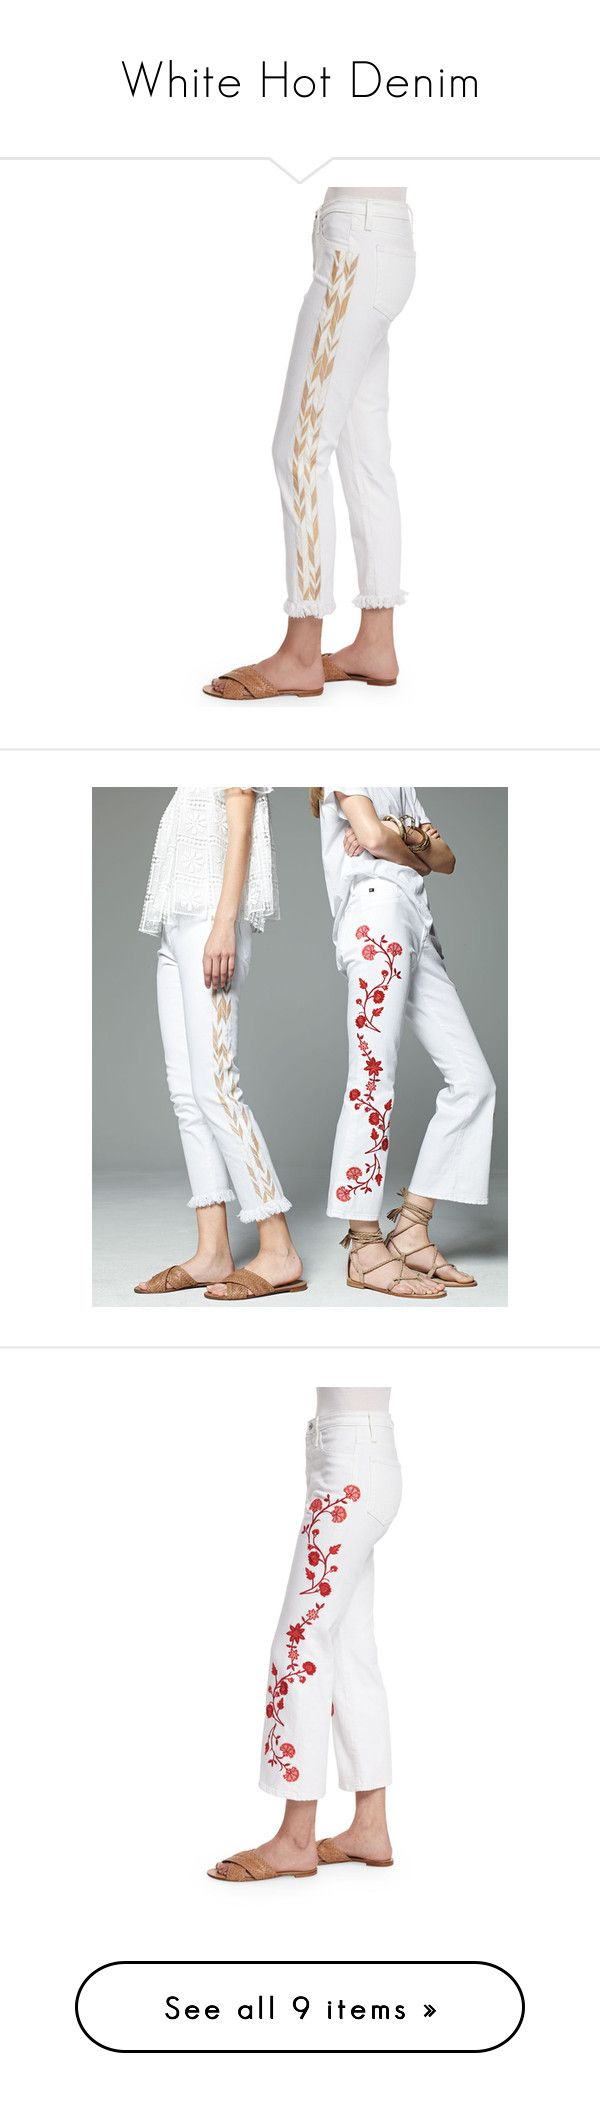 """White Hot Denim"" by neimanmarcus ❤ liked on Polyvore featuring jeans, white pants, ag adriano goldschmied, white crop pants, cropped pants, mid rise pants, cropped flared jeans, fitted jeans, embroidery jeans and flare jeans"